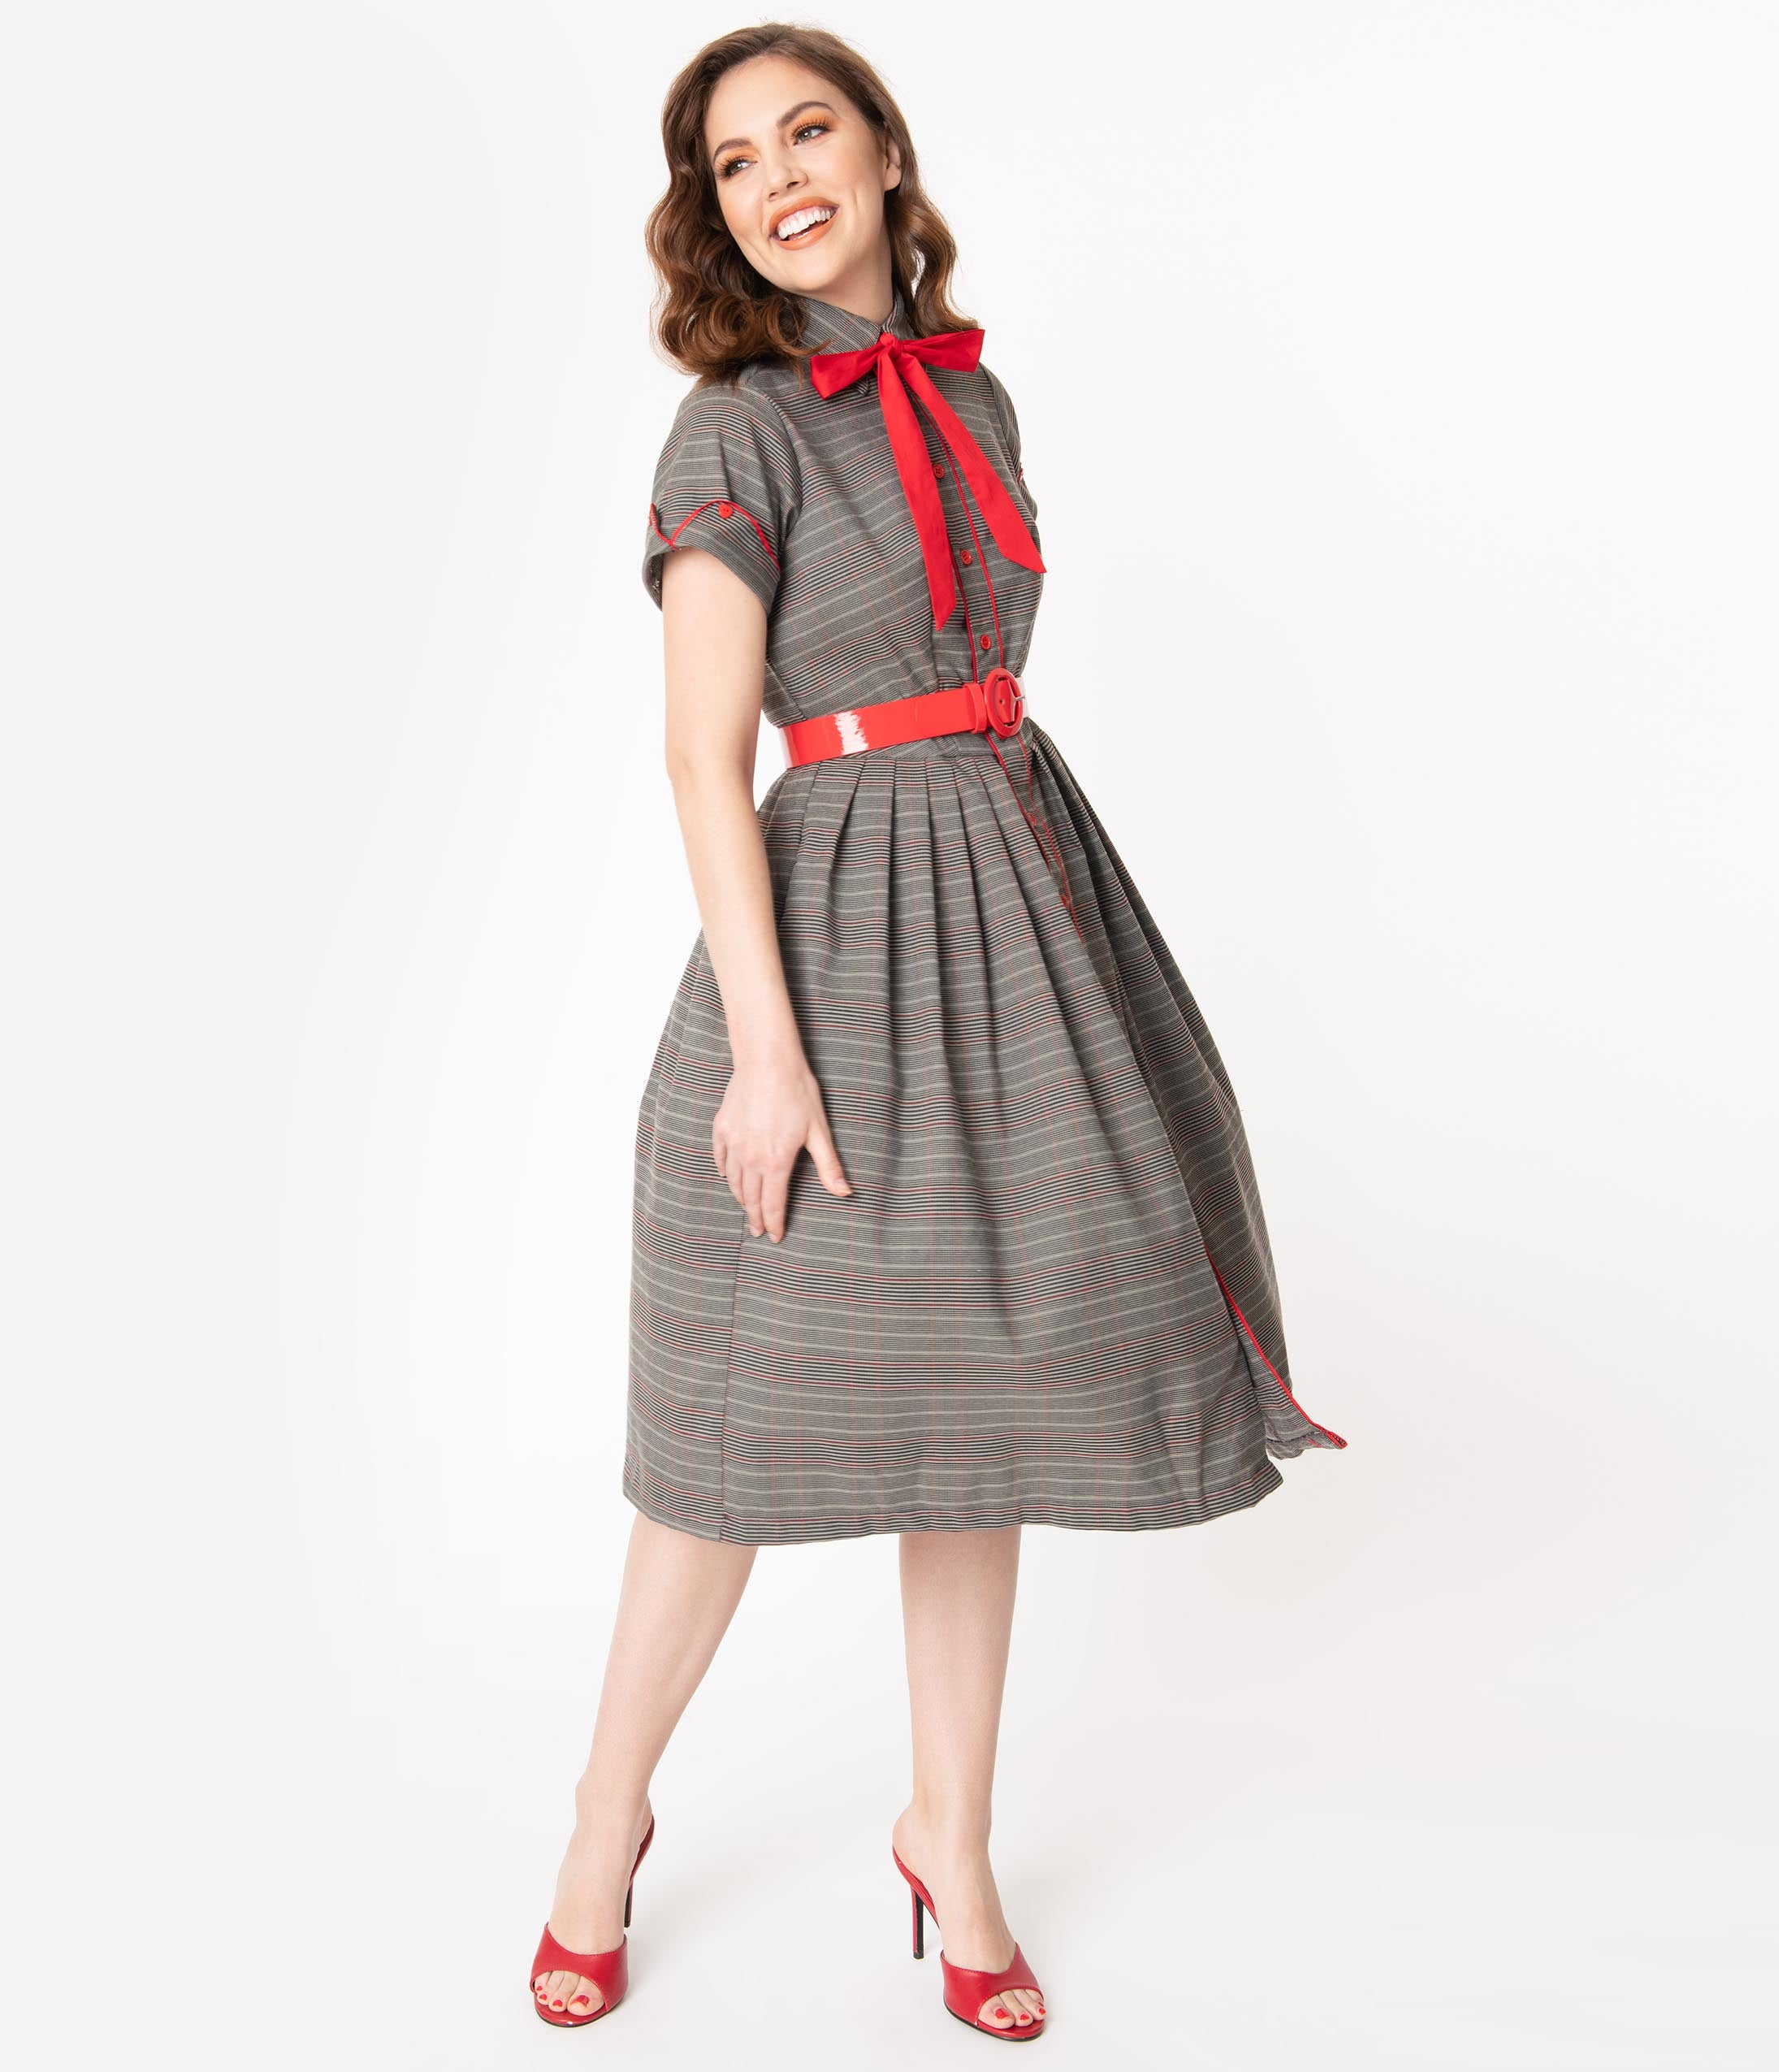 50 Vintage Inspired Clothing Brands & Stores 1950S Style Grey Plaid Button Up Swing Dress $118.00 AT vintagedancer.com